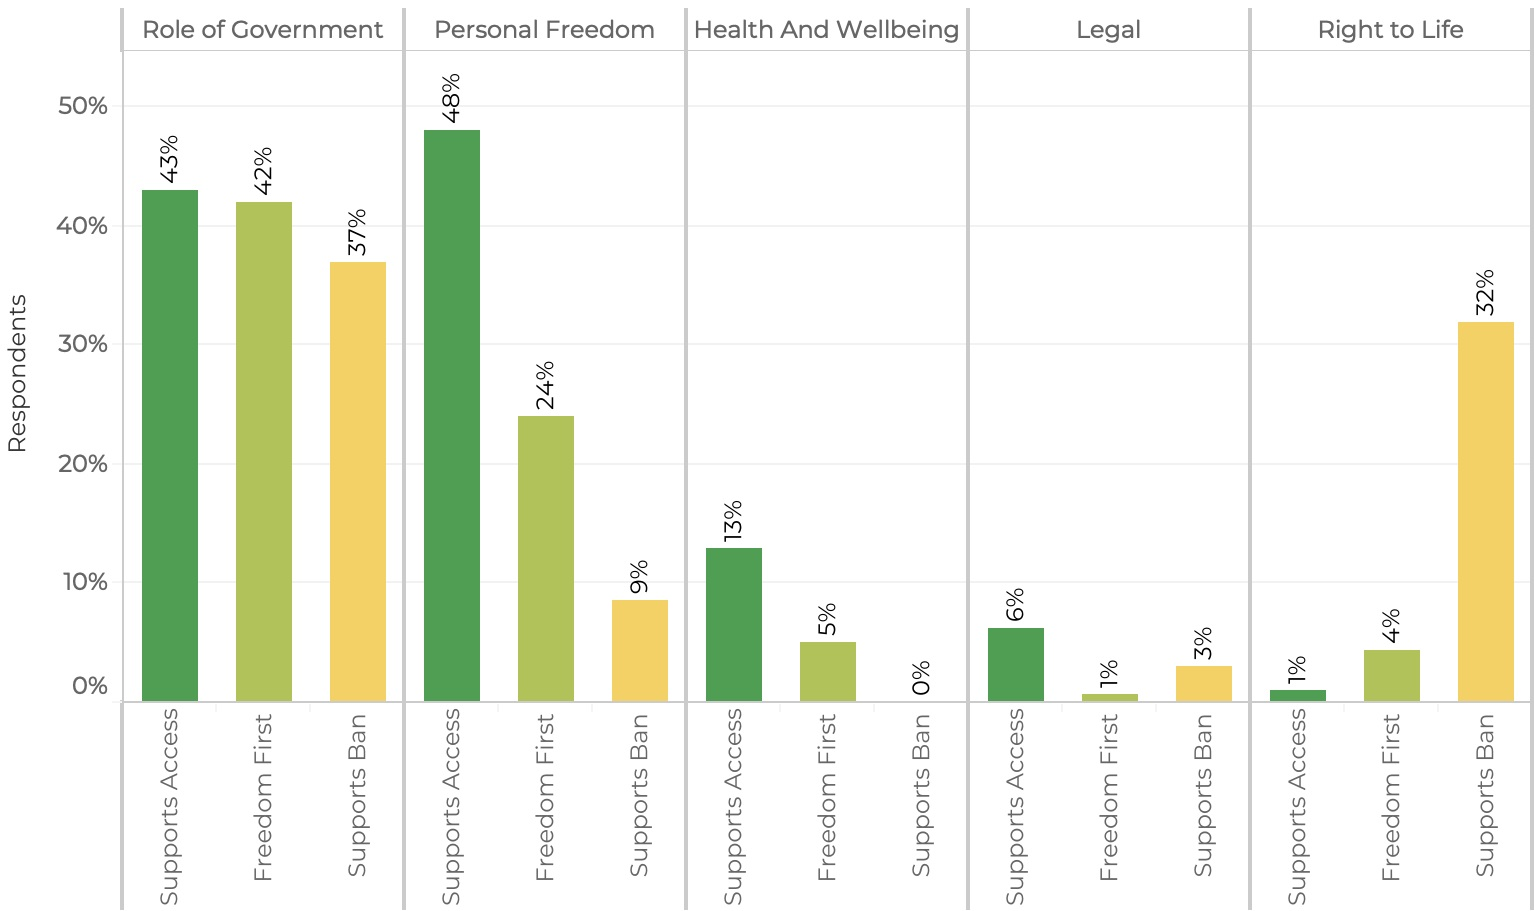 Respondents were asked to explain  why  they felt that way about the regulation of respondents in an open-ended format. Large-scale text analysis reveals these top five themes for explaining emotional associations, presented by position on the issue.